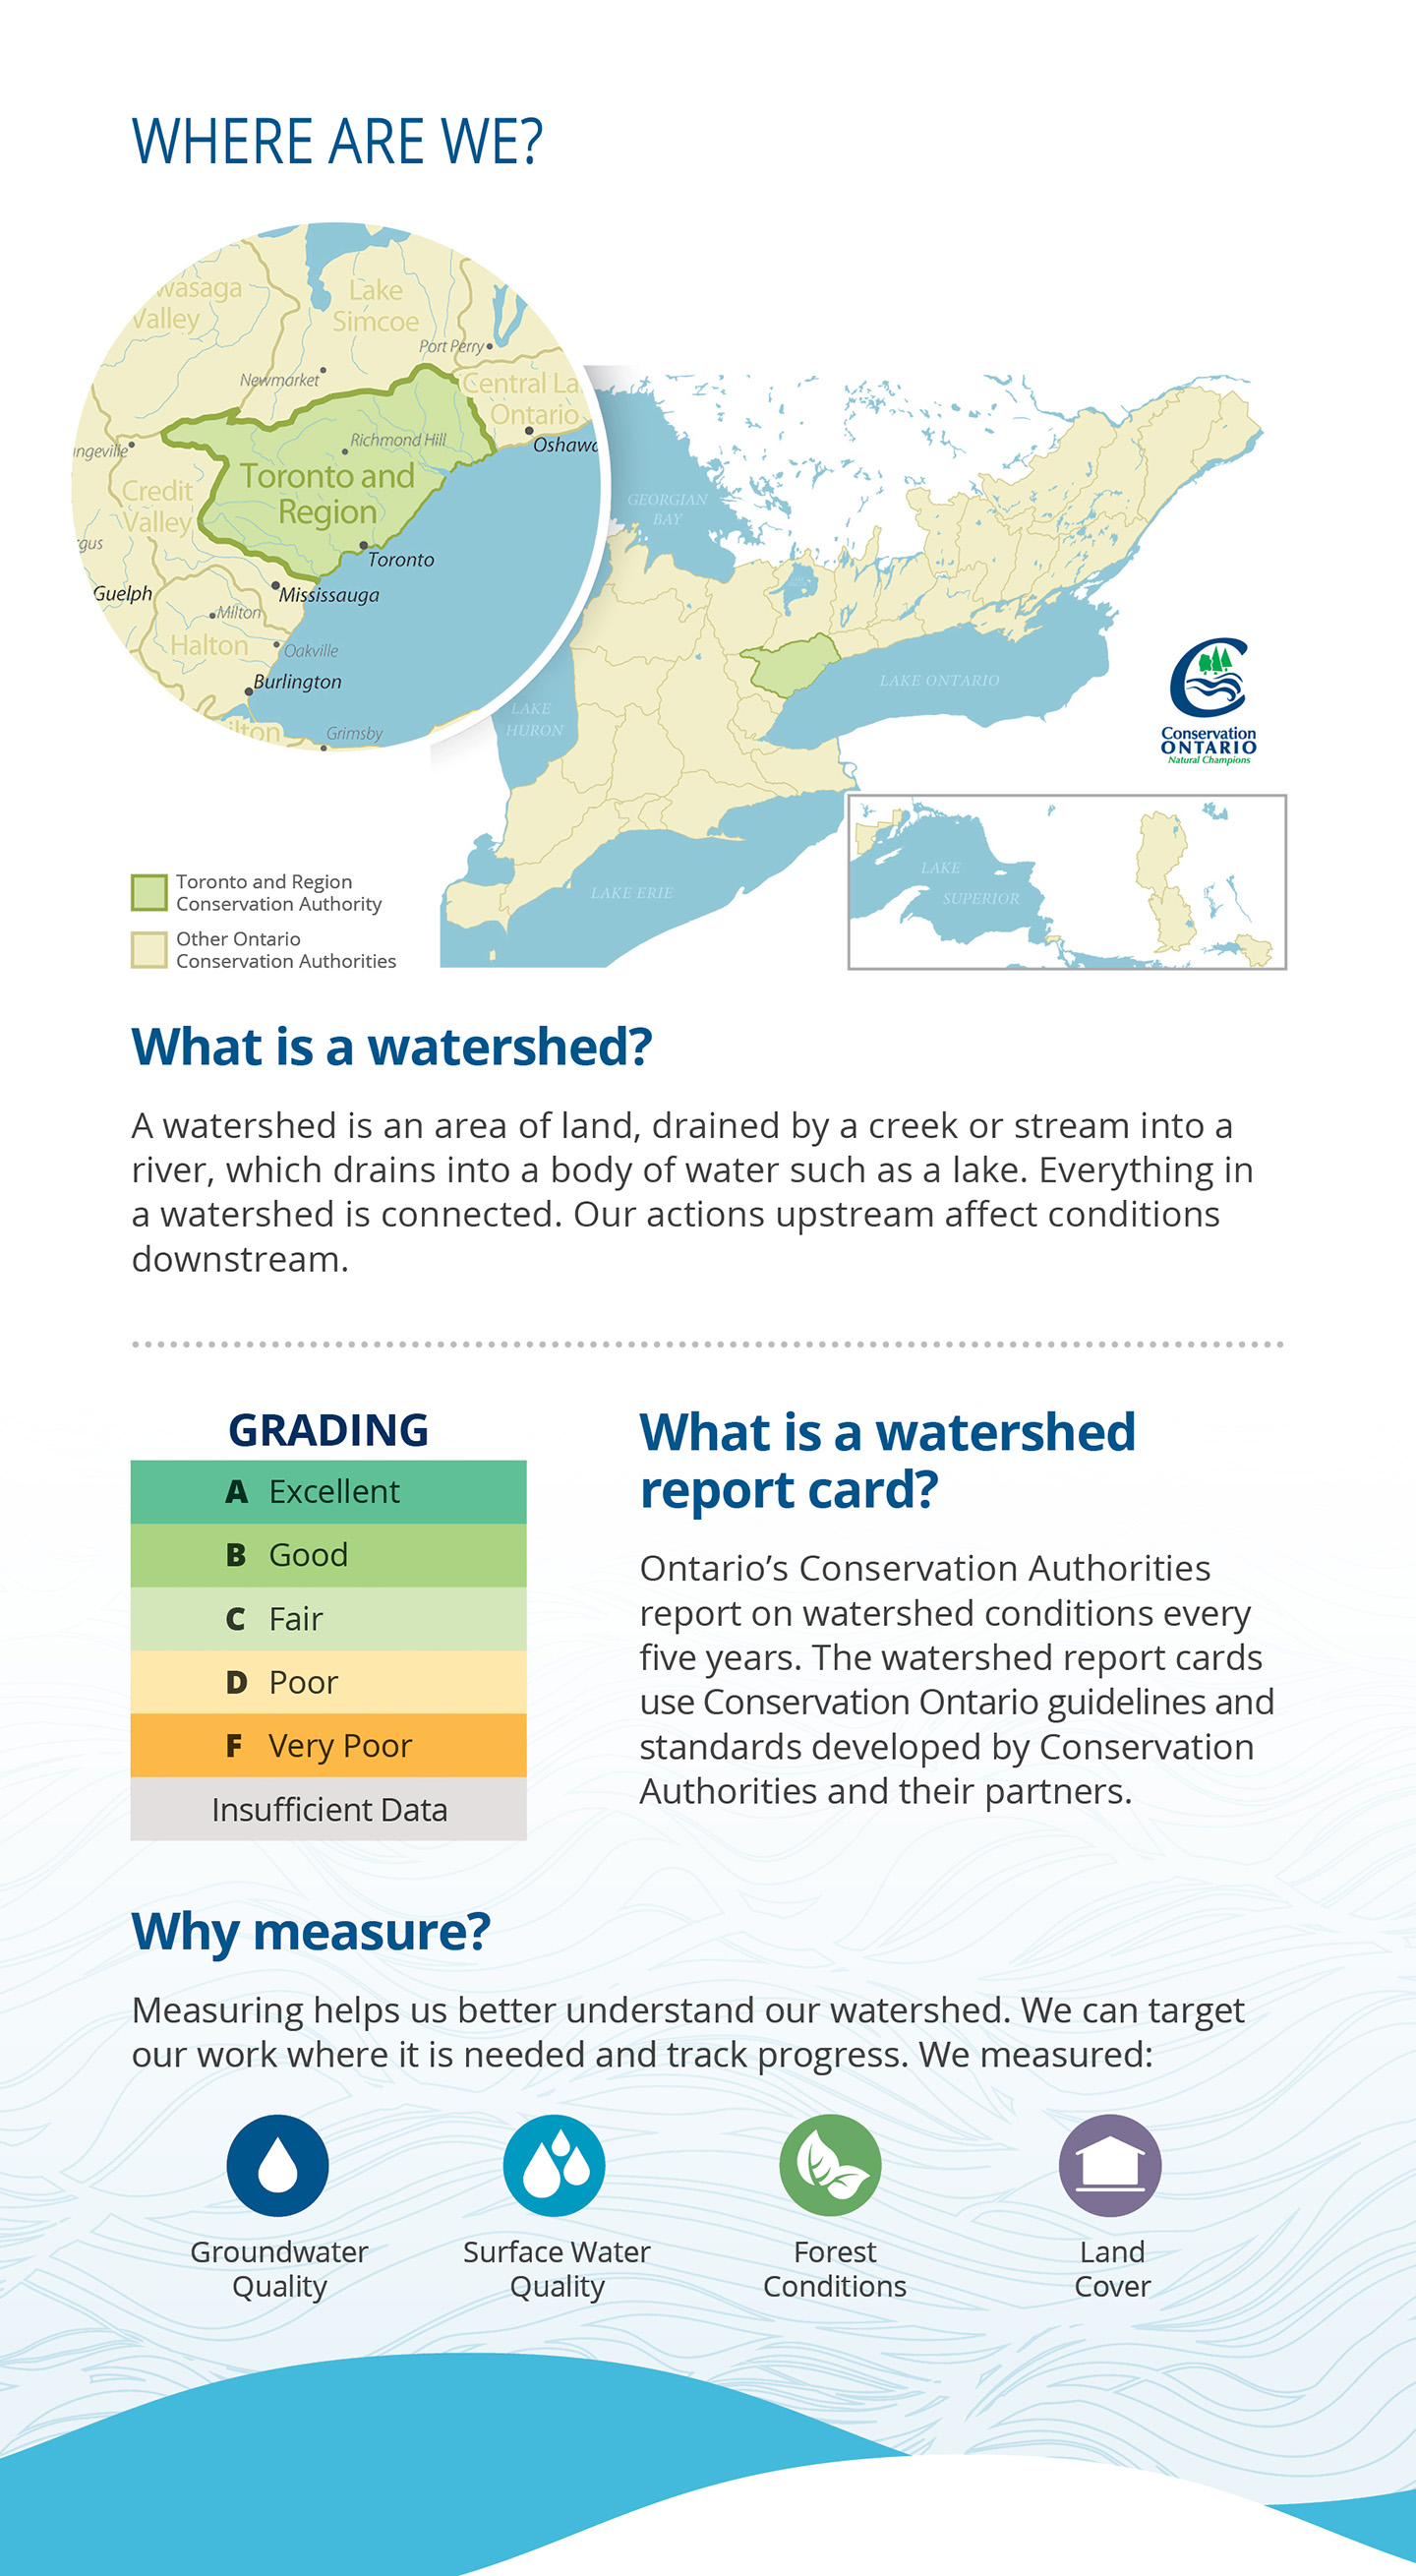 introductory panel of Humber River watershed report card